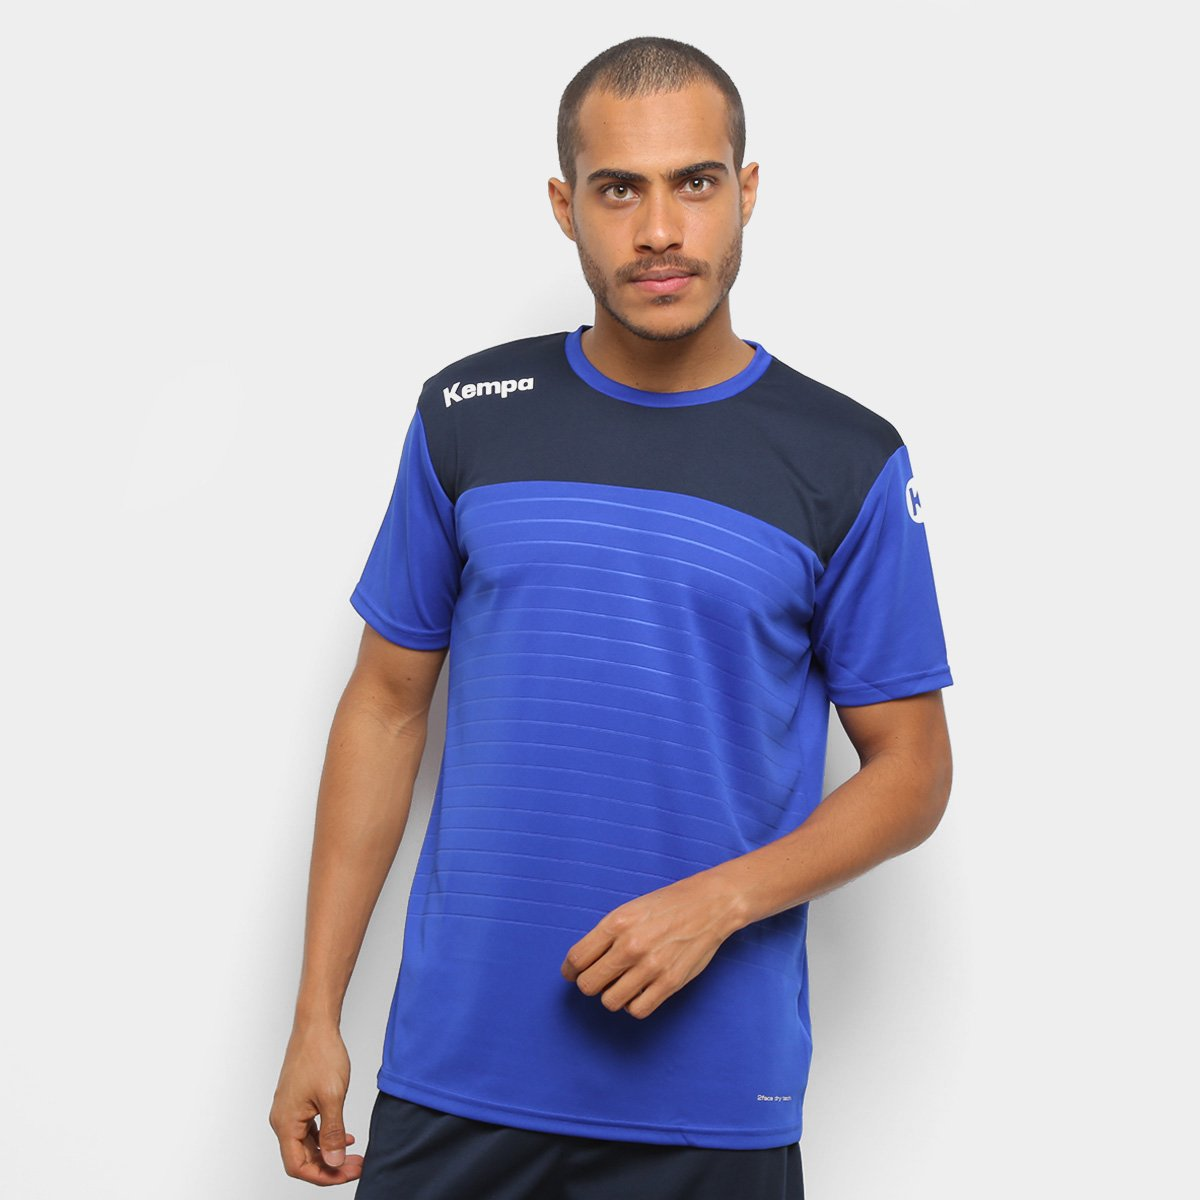 Camiseta Kempa Emotion 2.0 Masculina